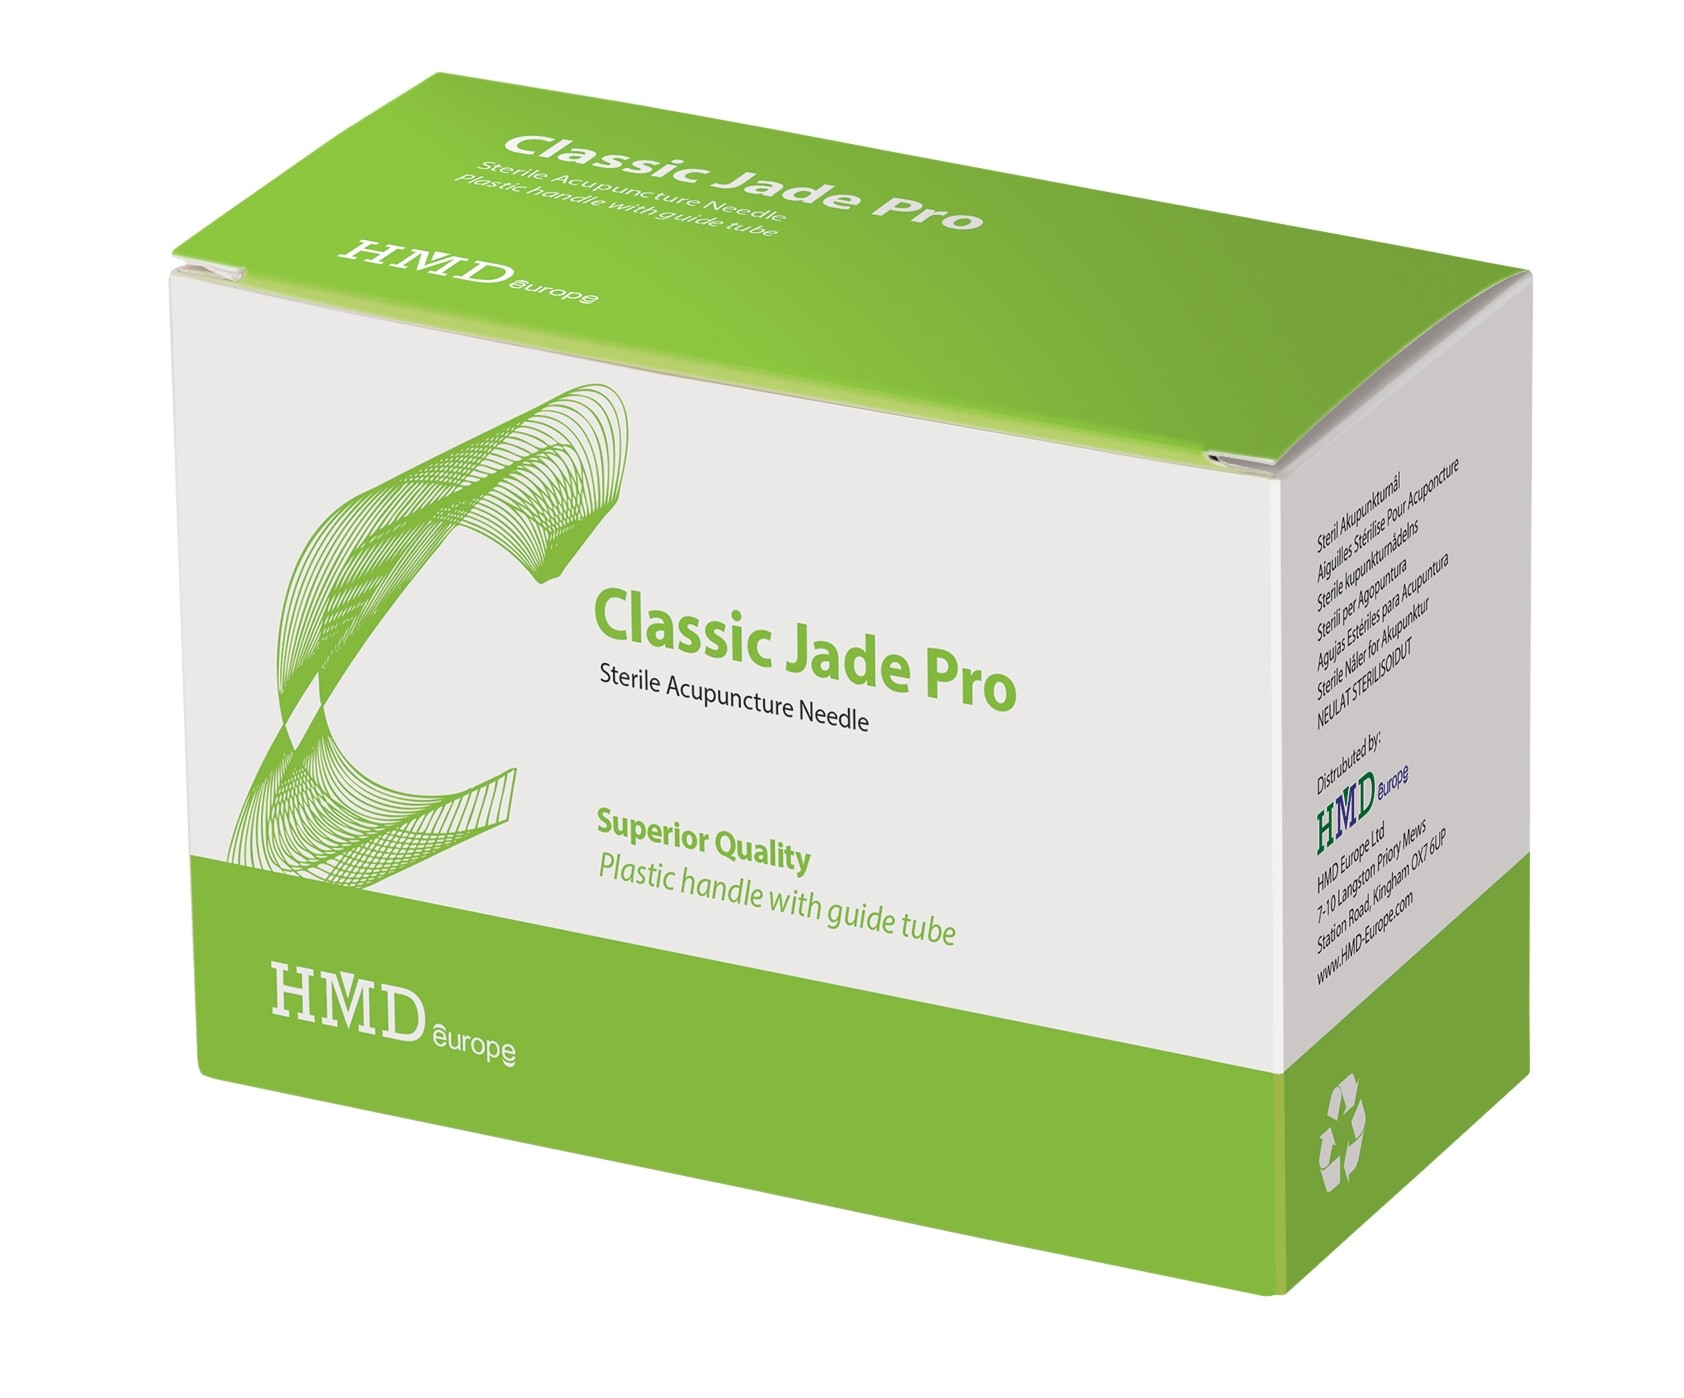 .14x30mm Classic Jade Pro Acupuncture Needle